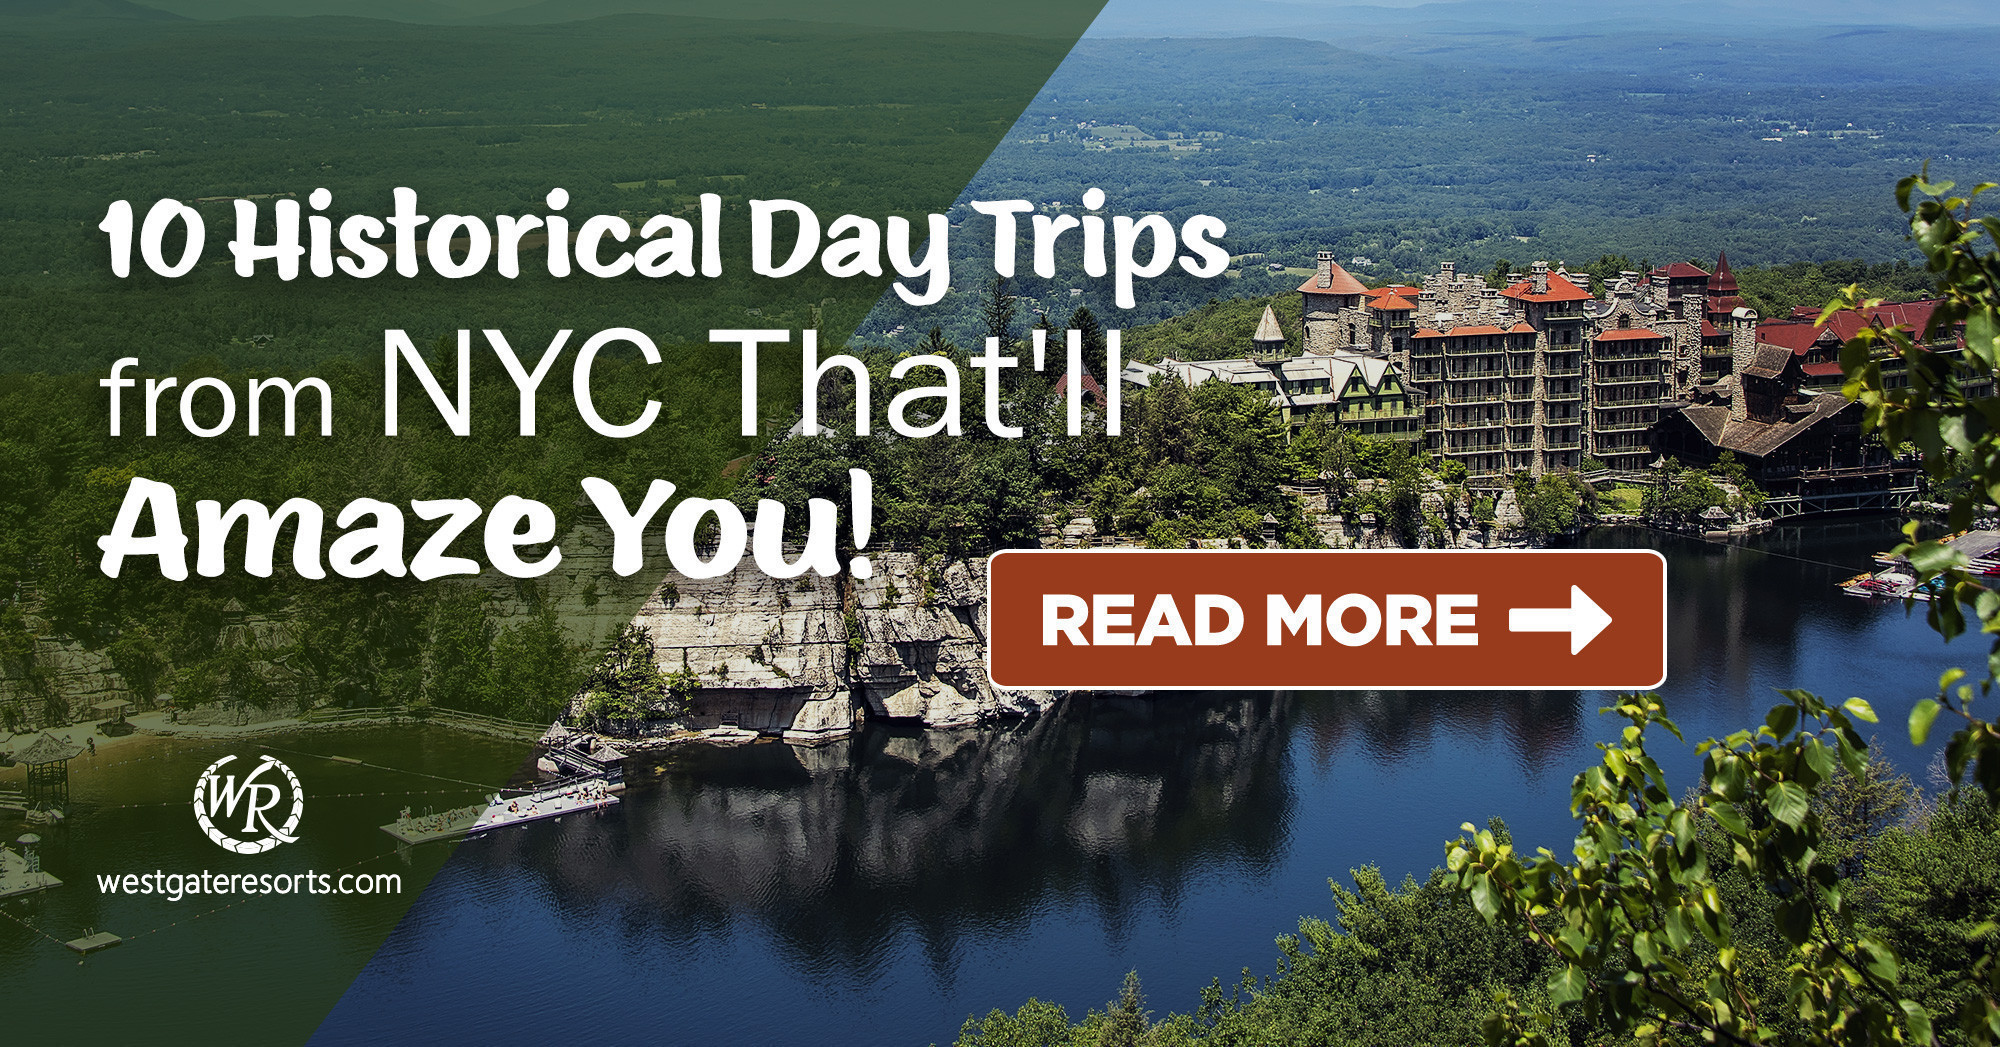 10 Historical Day Trips from NYC That'll Amaze You